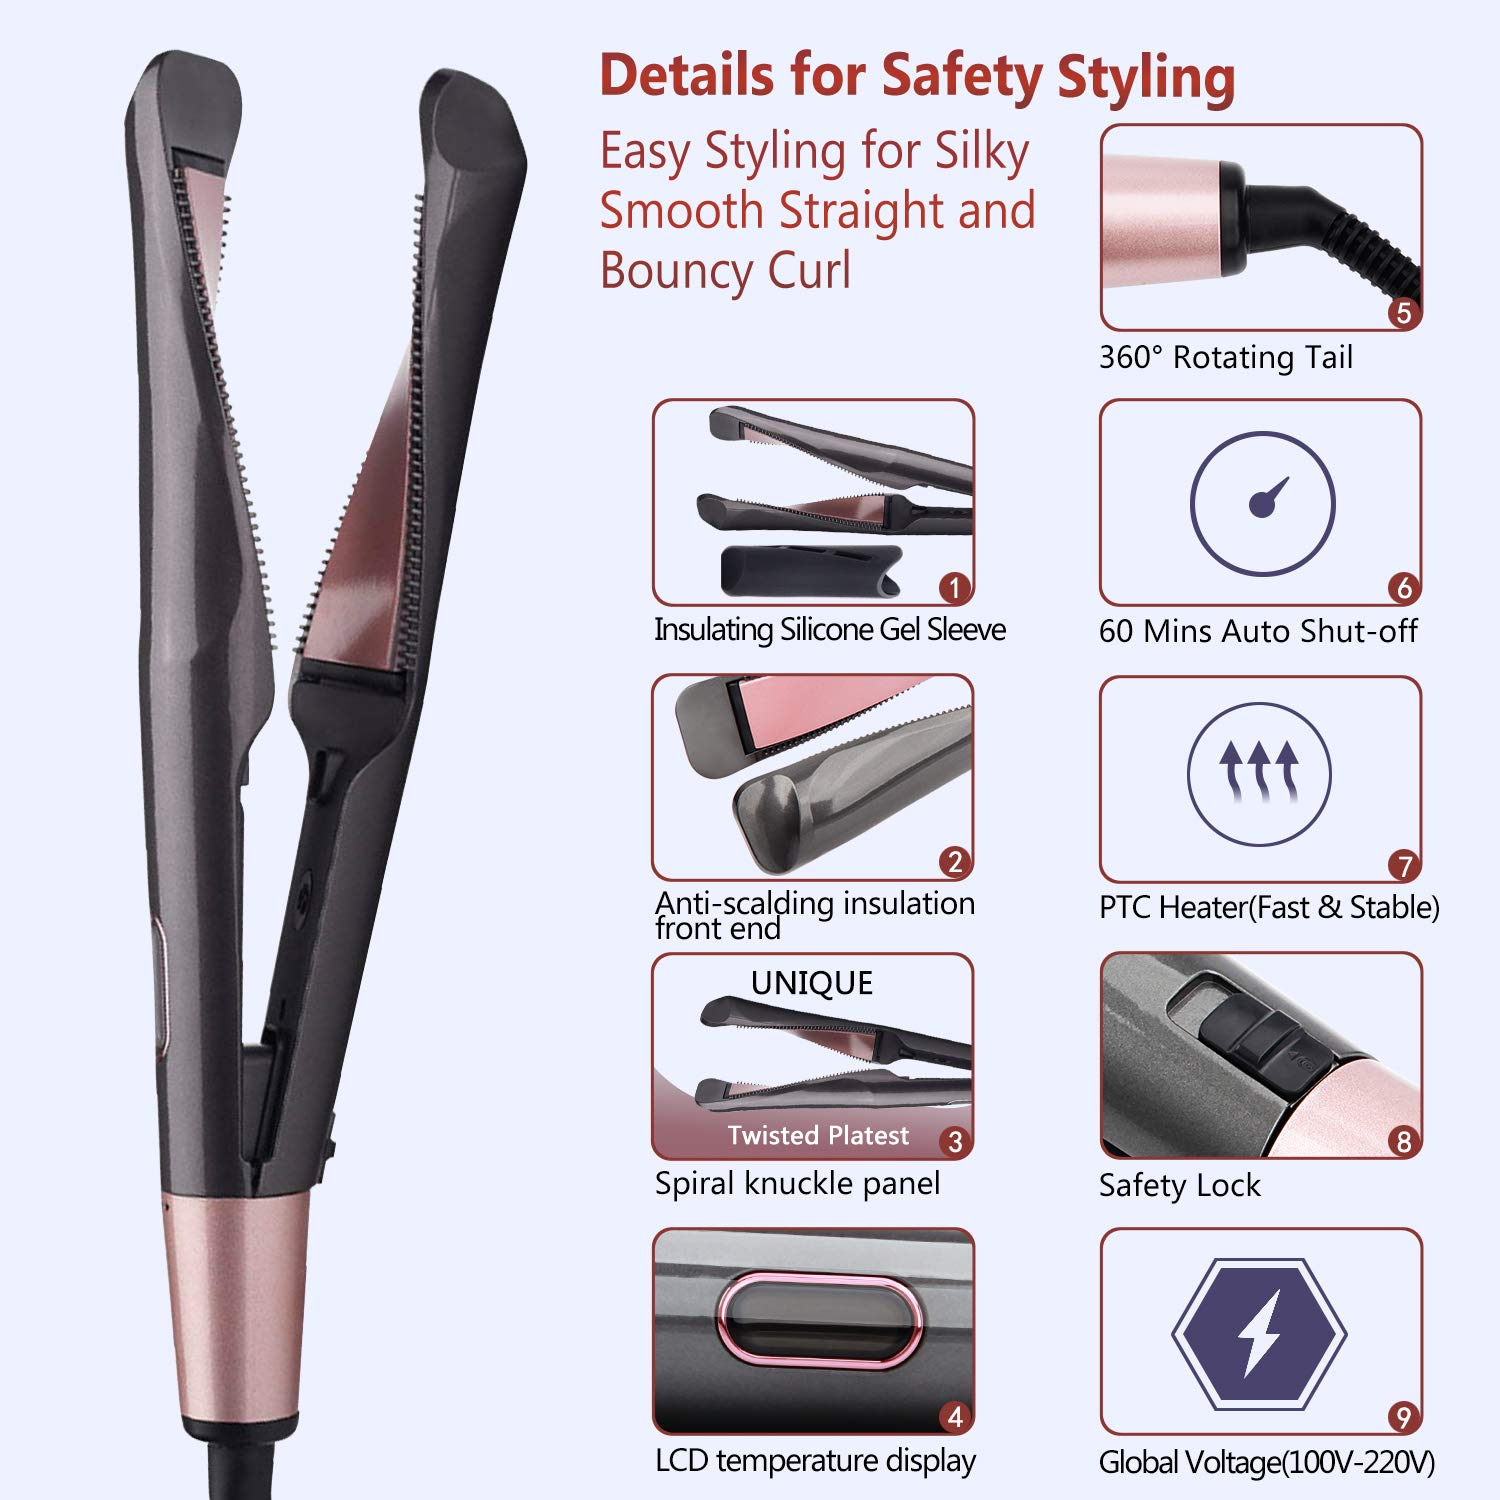 Купить с кэшбэком Professional Culer Wand Twisted Plate 2 in 1 Hair Flat Iron Ceramic Curling Iron Hair Curler Hair Styling Tool Hot Comb